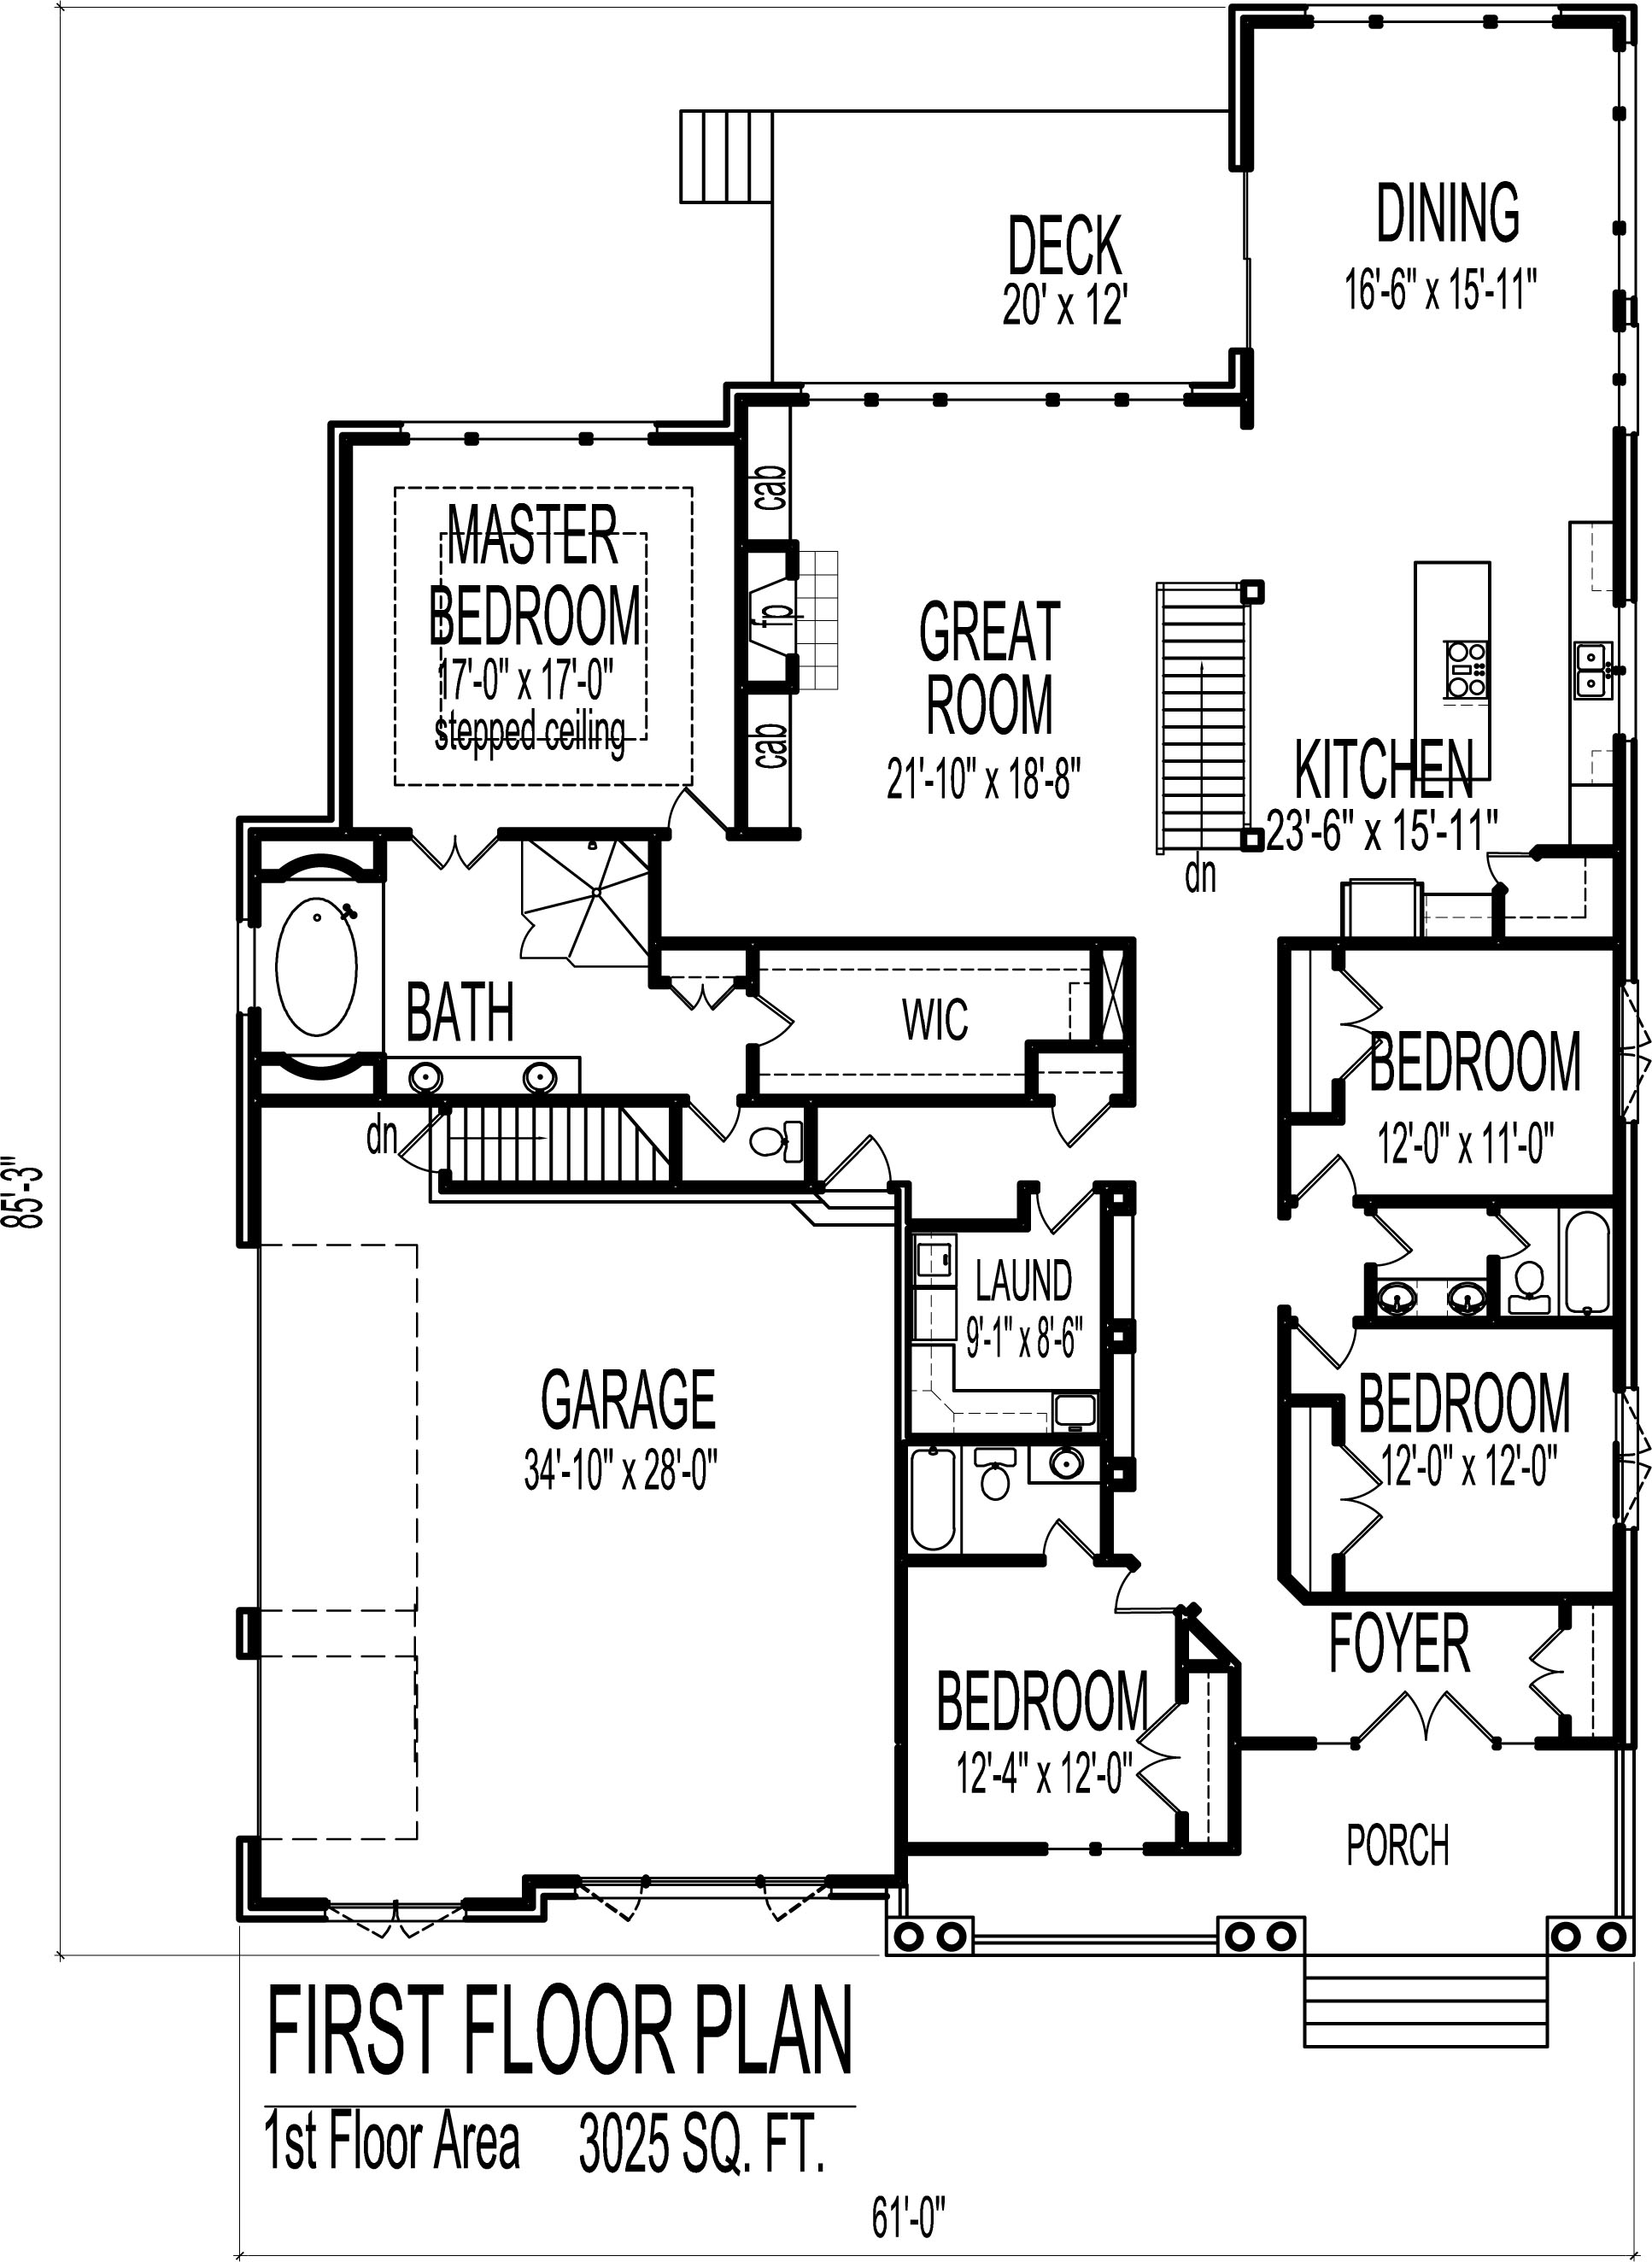 English cottage house floor plans european 4 bedroom 1 story ranch european cottage house design 3000 sf 4 bedroom 3 bath baement 3 car garage chicago peoria malvernweather Choice Image